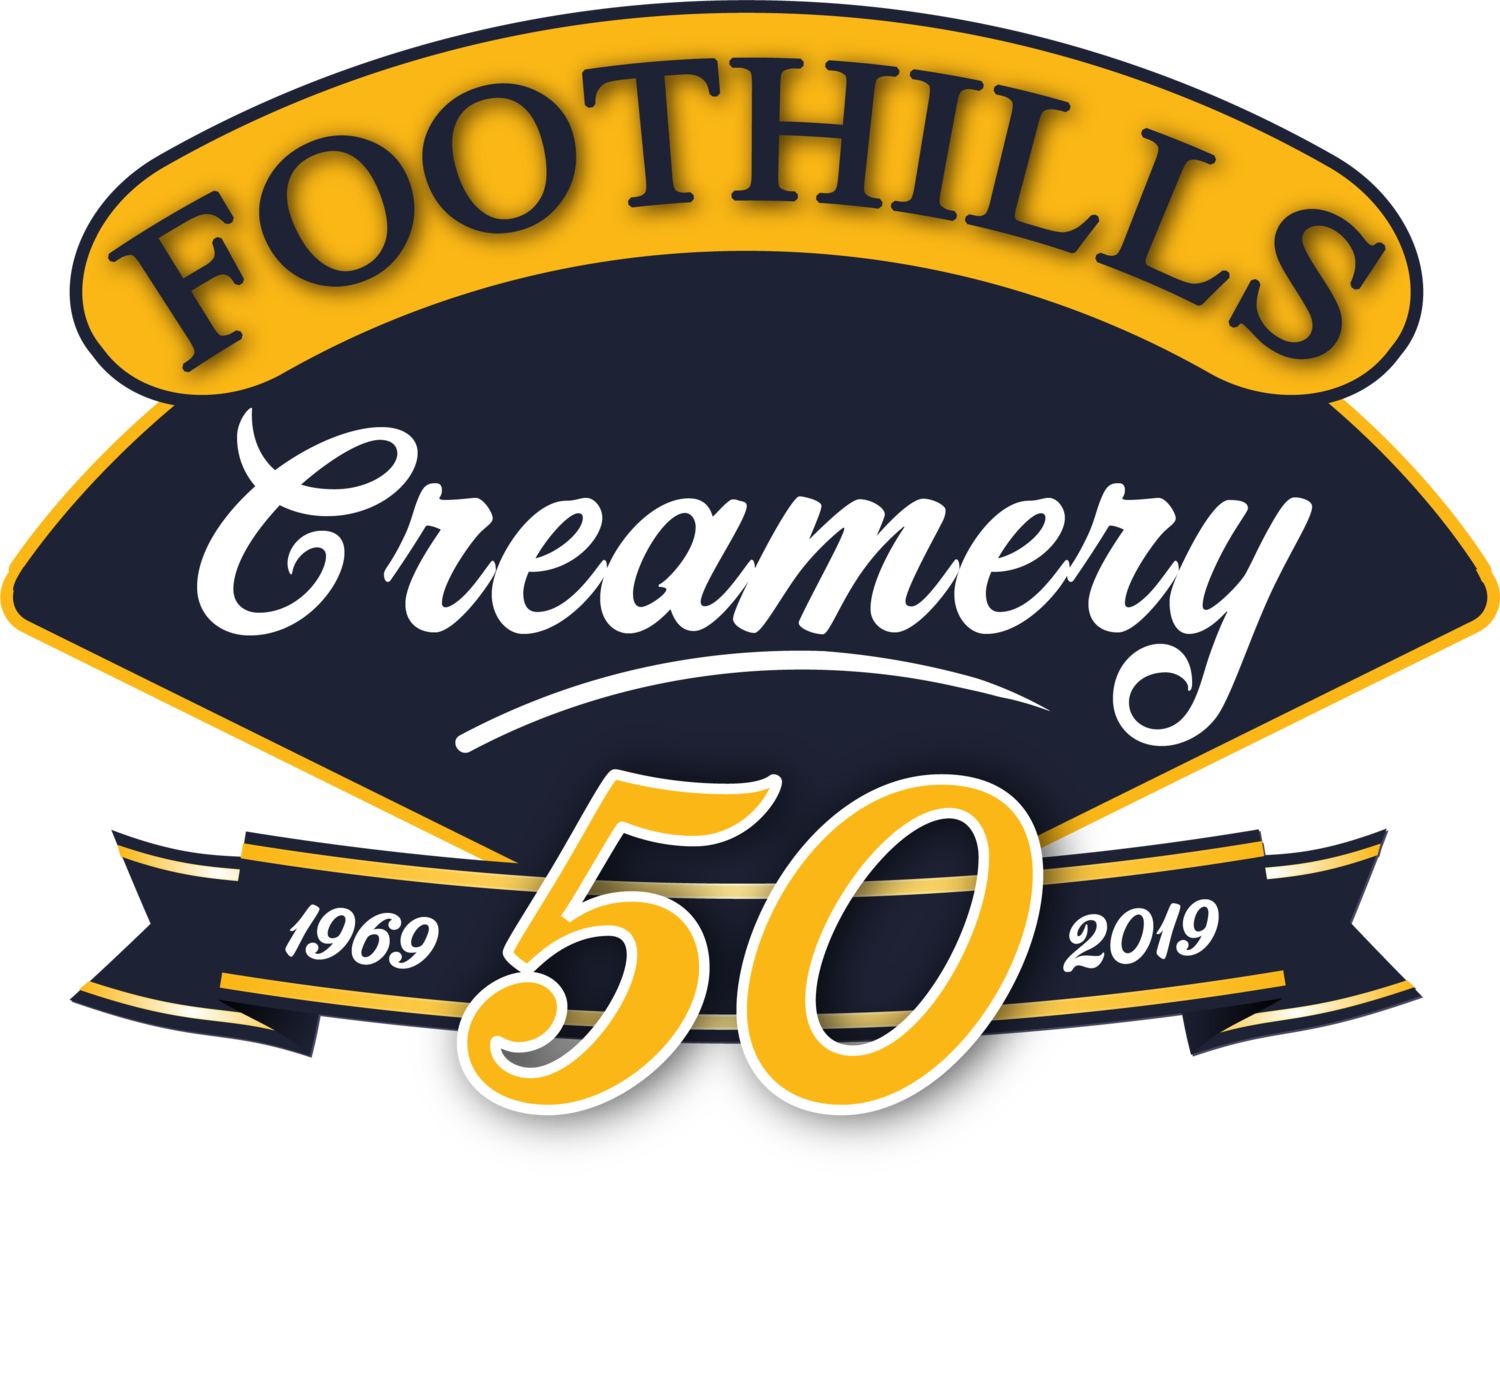 Foothills Creamery Ltd.